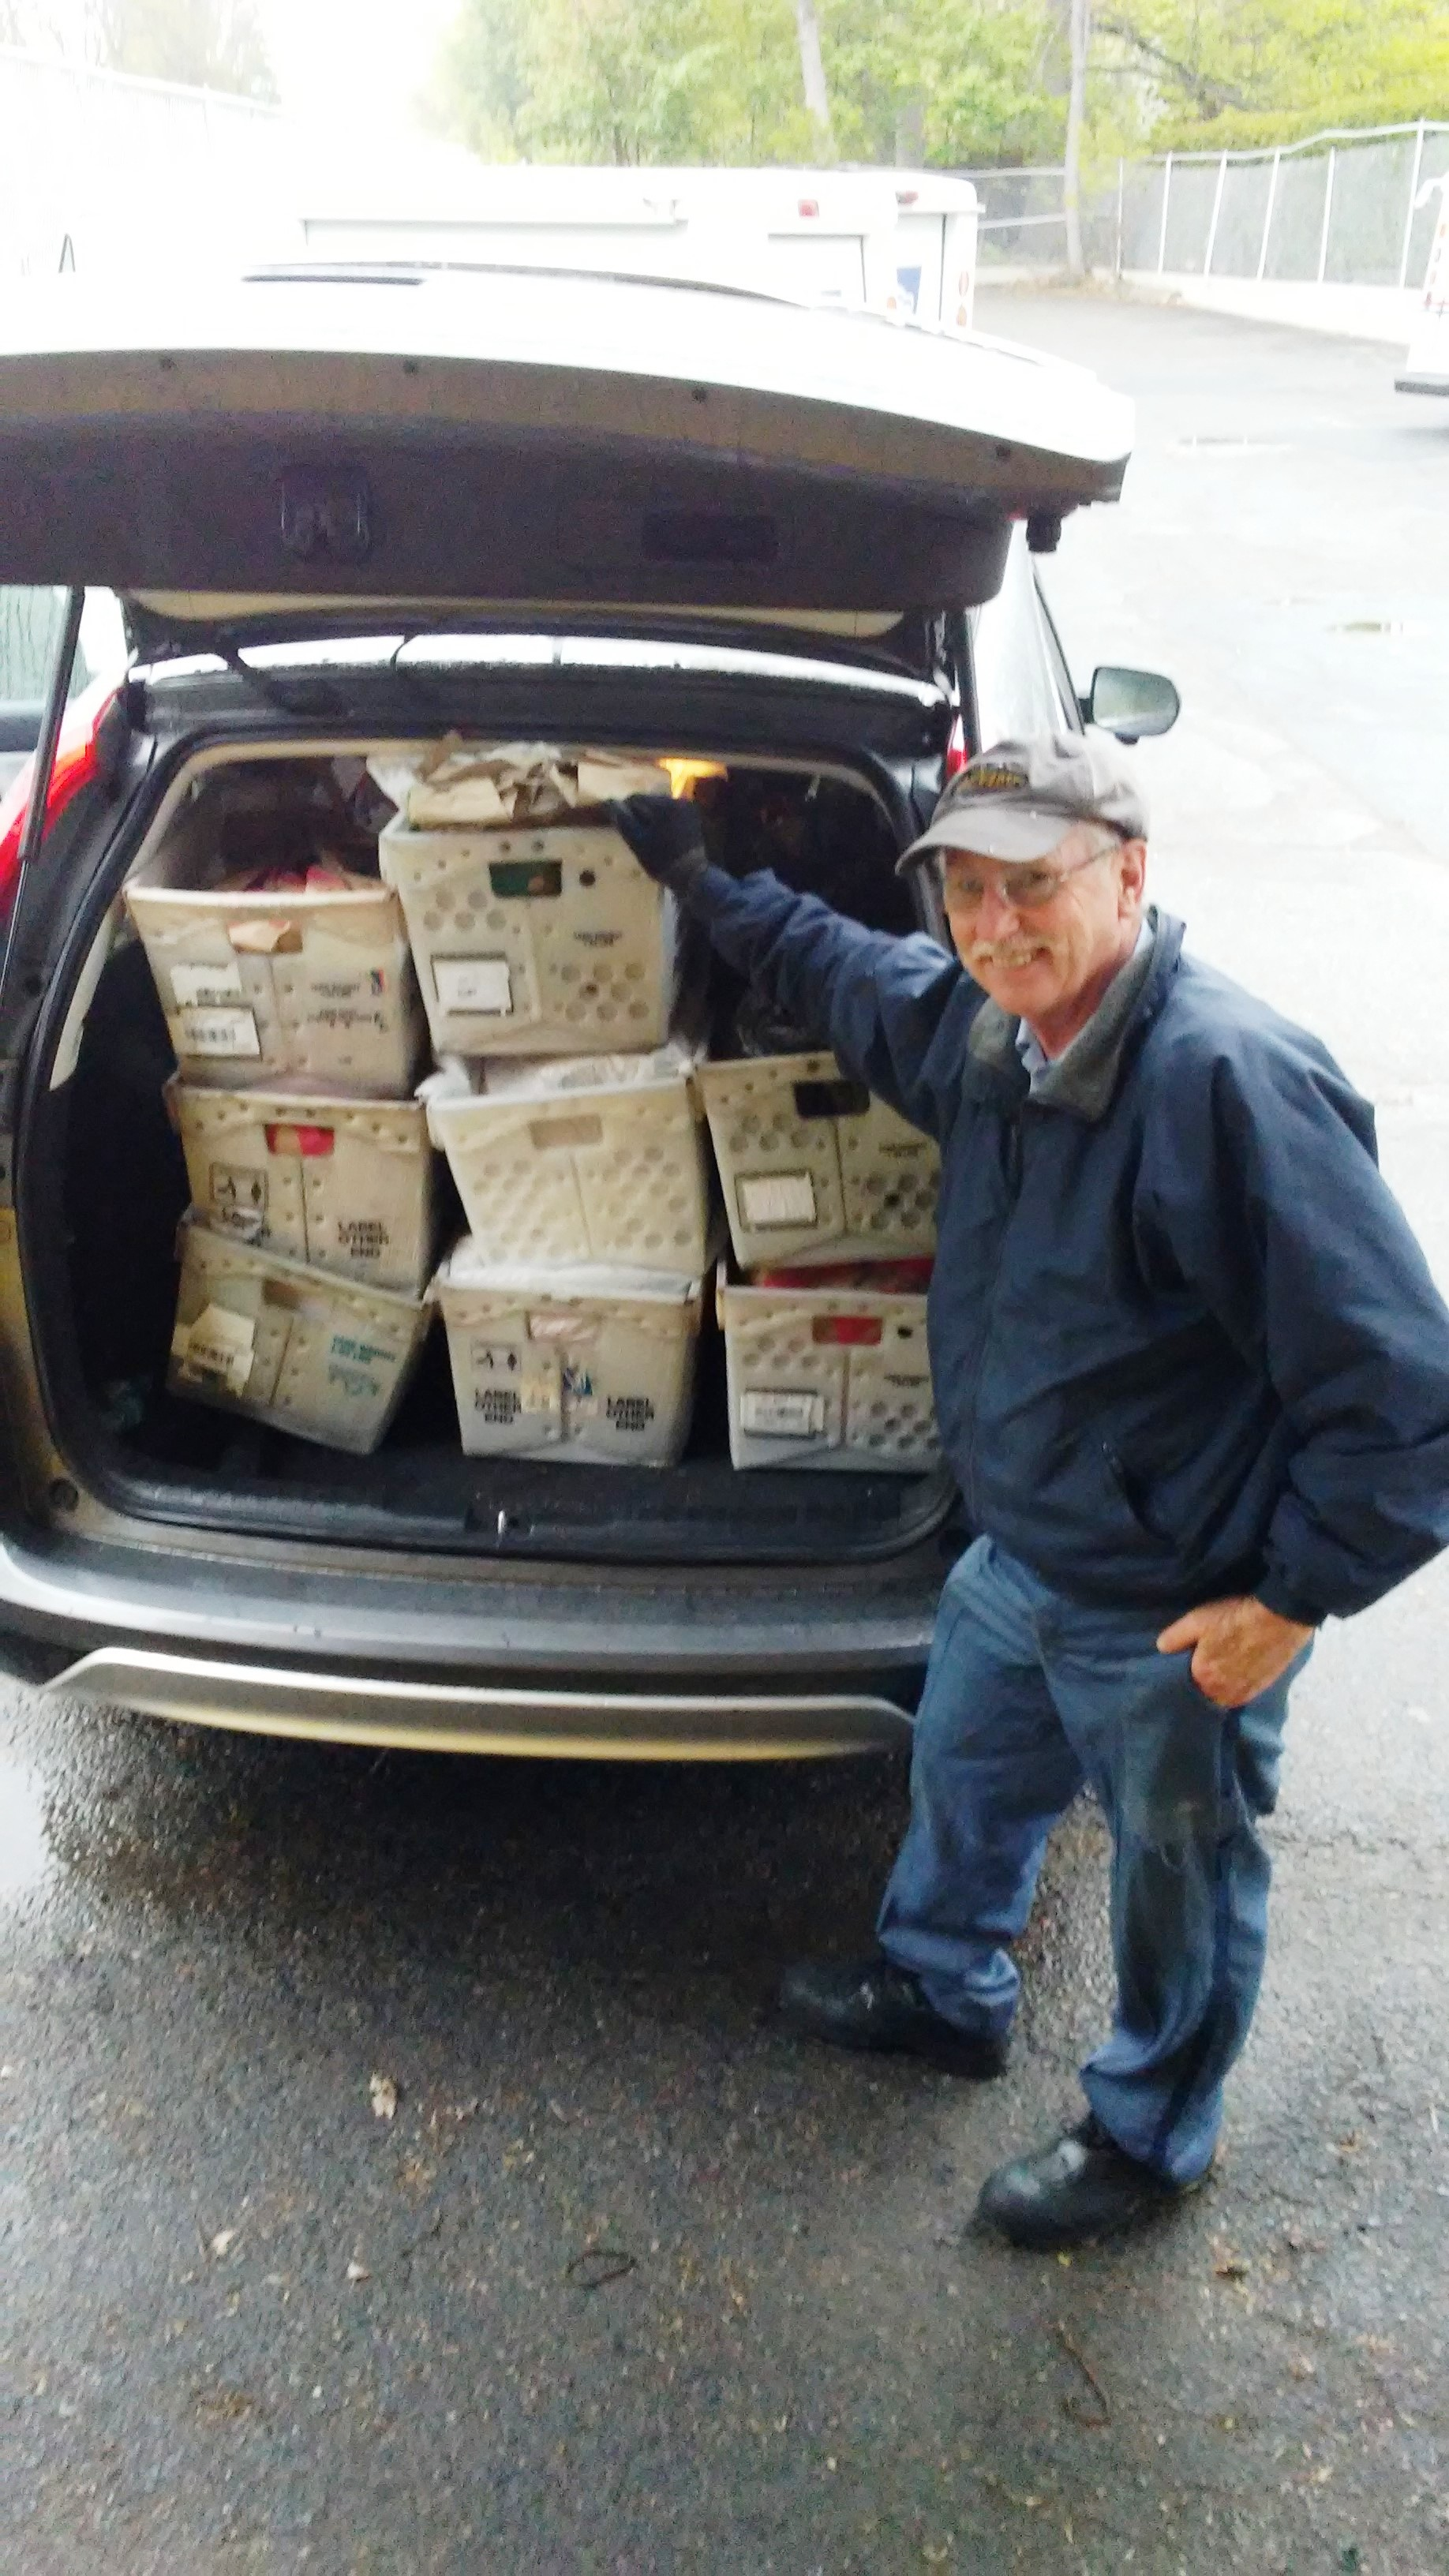 Wellesley Square Steward Mark Lester gets ready to deliver collected food to the local pantry